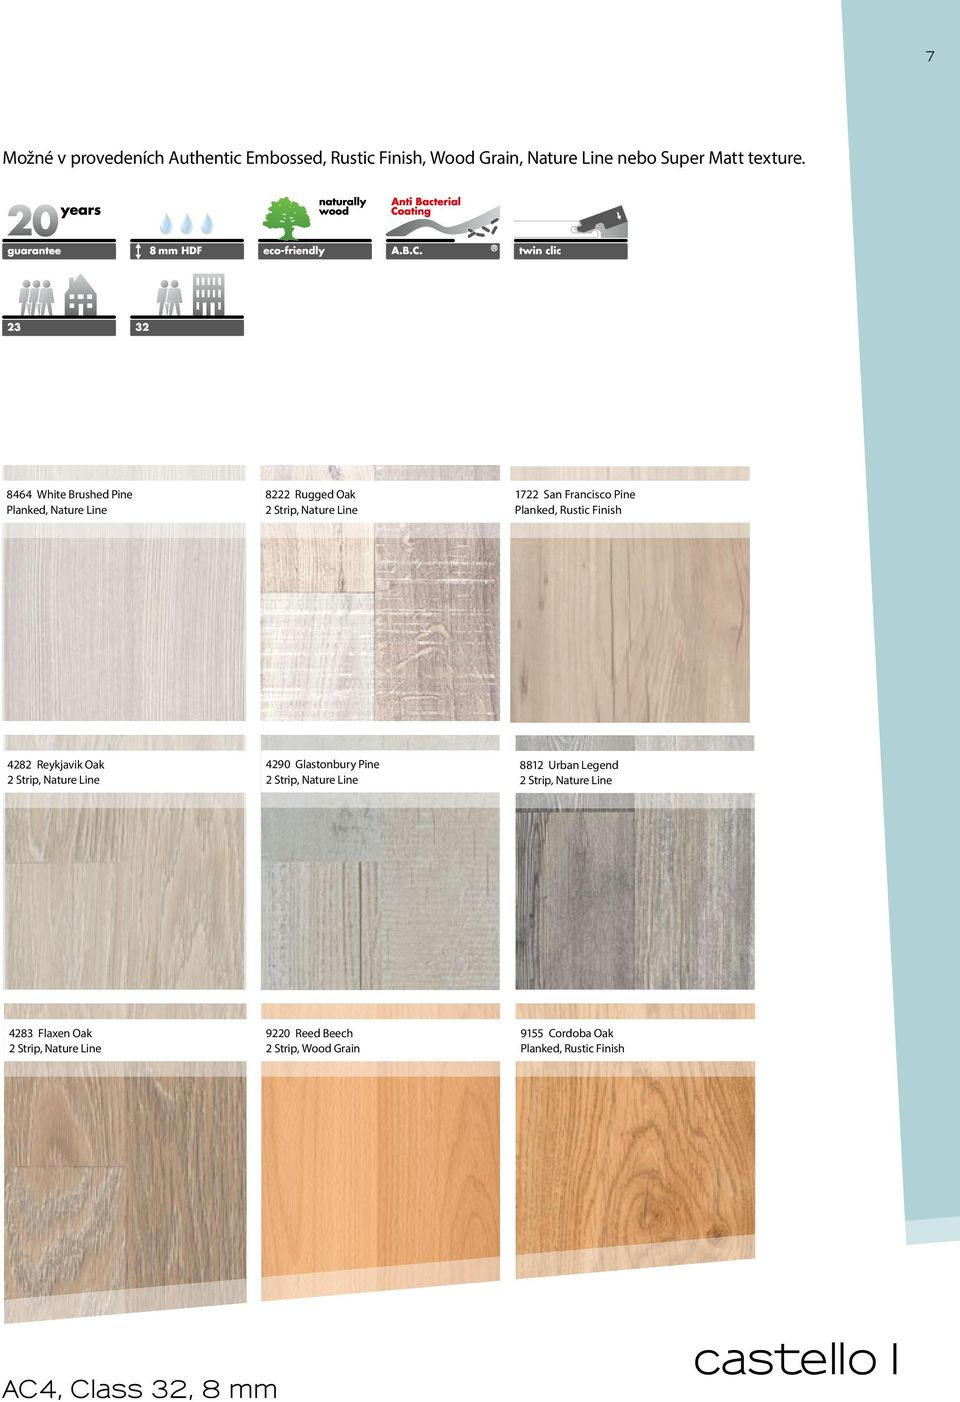 8464 White Brushed Pine Planked, Nature Line 8222 Rugged Oak 1722 San Francisco Pine Planked,